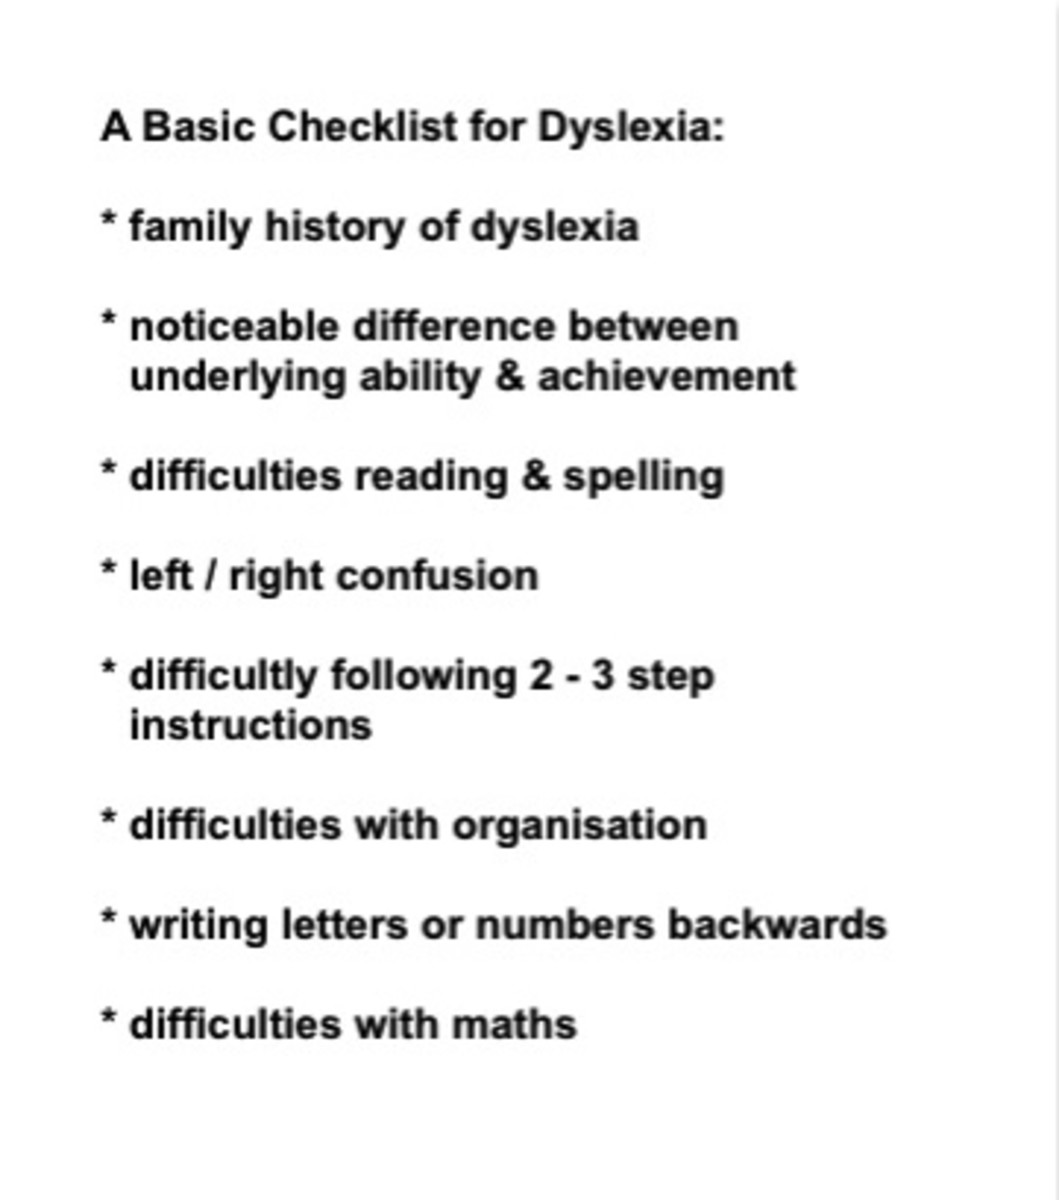 adult-dyslexia-difficulties-professional-assessment-contacts-for-advice-action-remedies